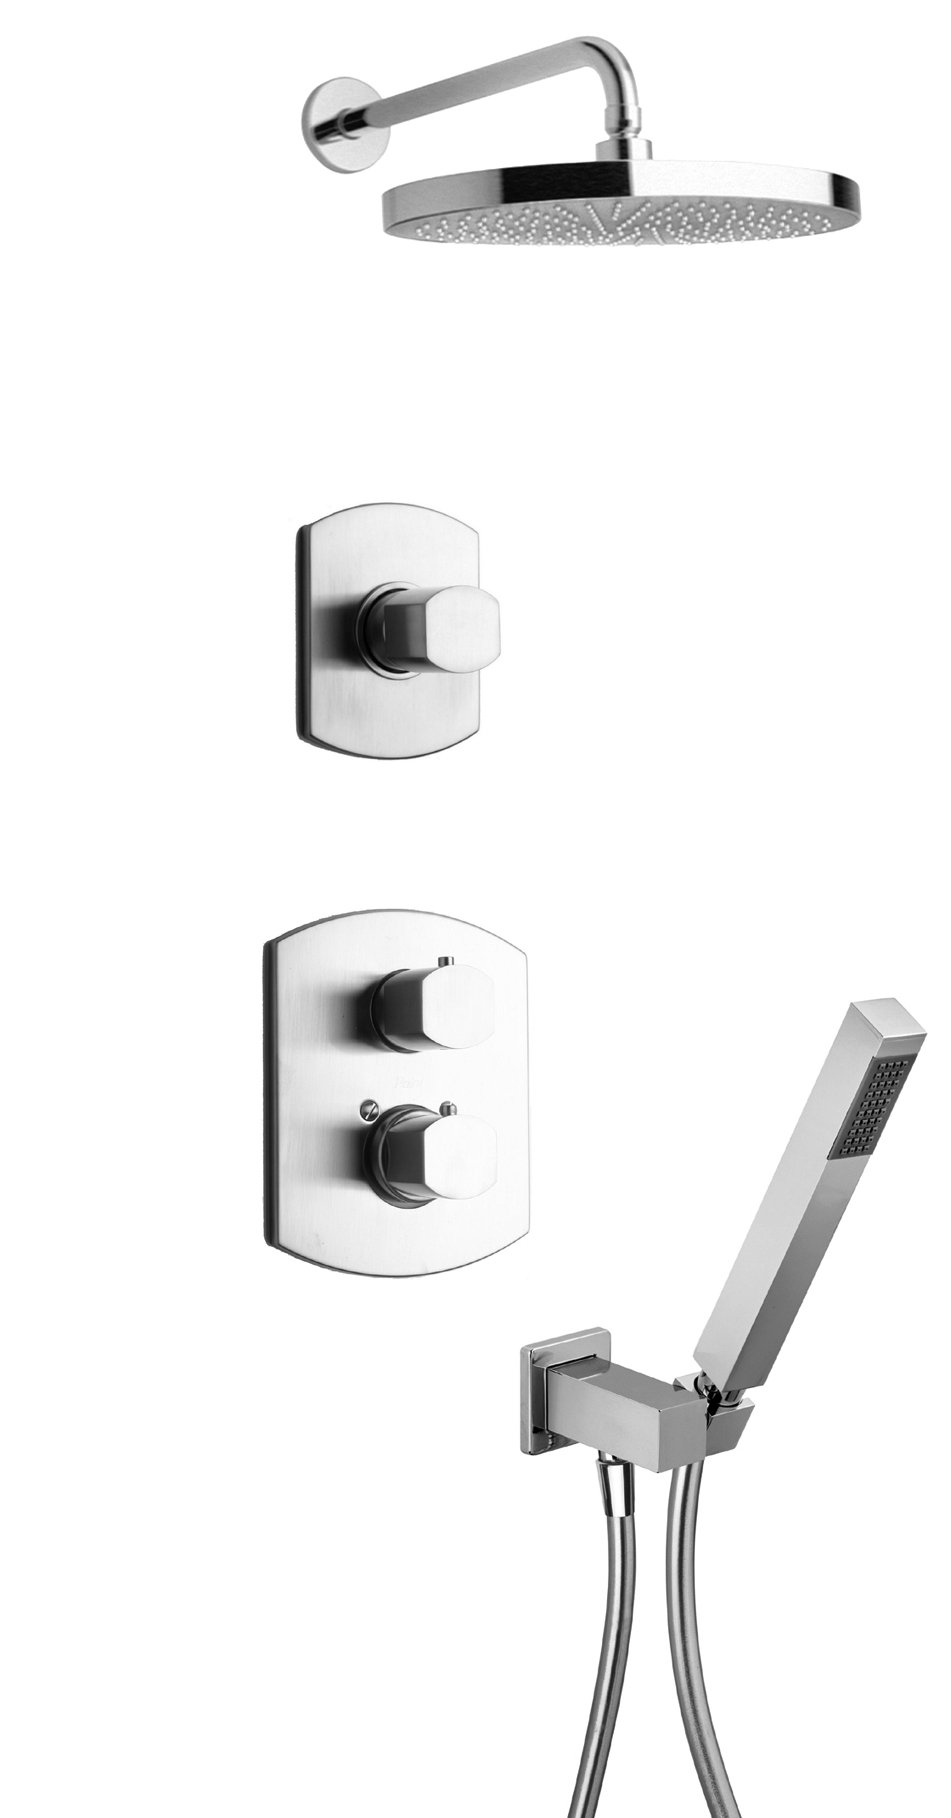 """Thermostatic Shower With 3/4"""" Ceramic Disc Volume Control, 3-Way Diverter and Hand-Shower in Chrome Finish"""